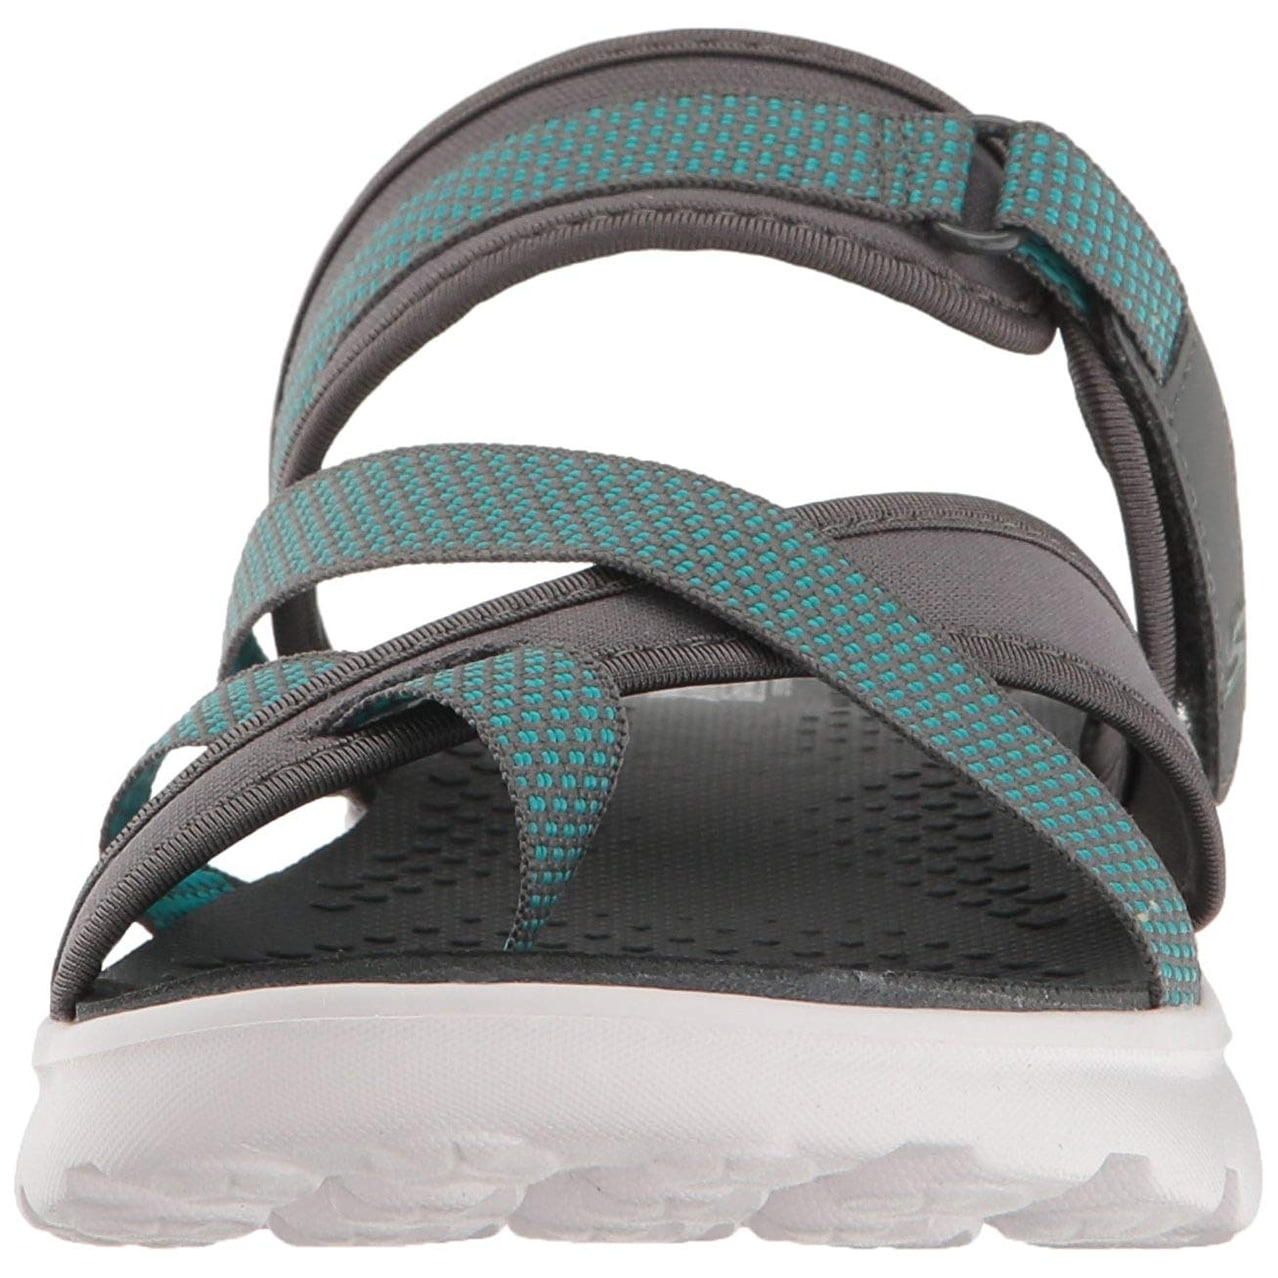 a3d71d35 Shop Skechers Performance Women's On The Go 400 Discover Flip Flop - Free  Shipping On Orders Over $45 - Overstock - 26262832